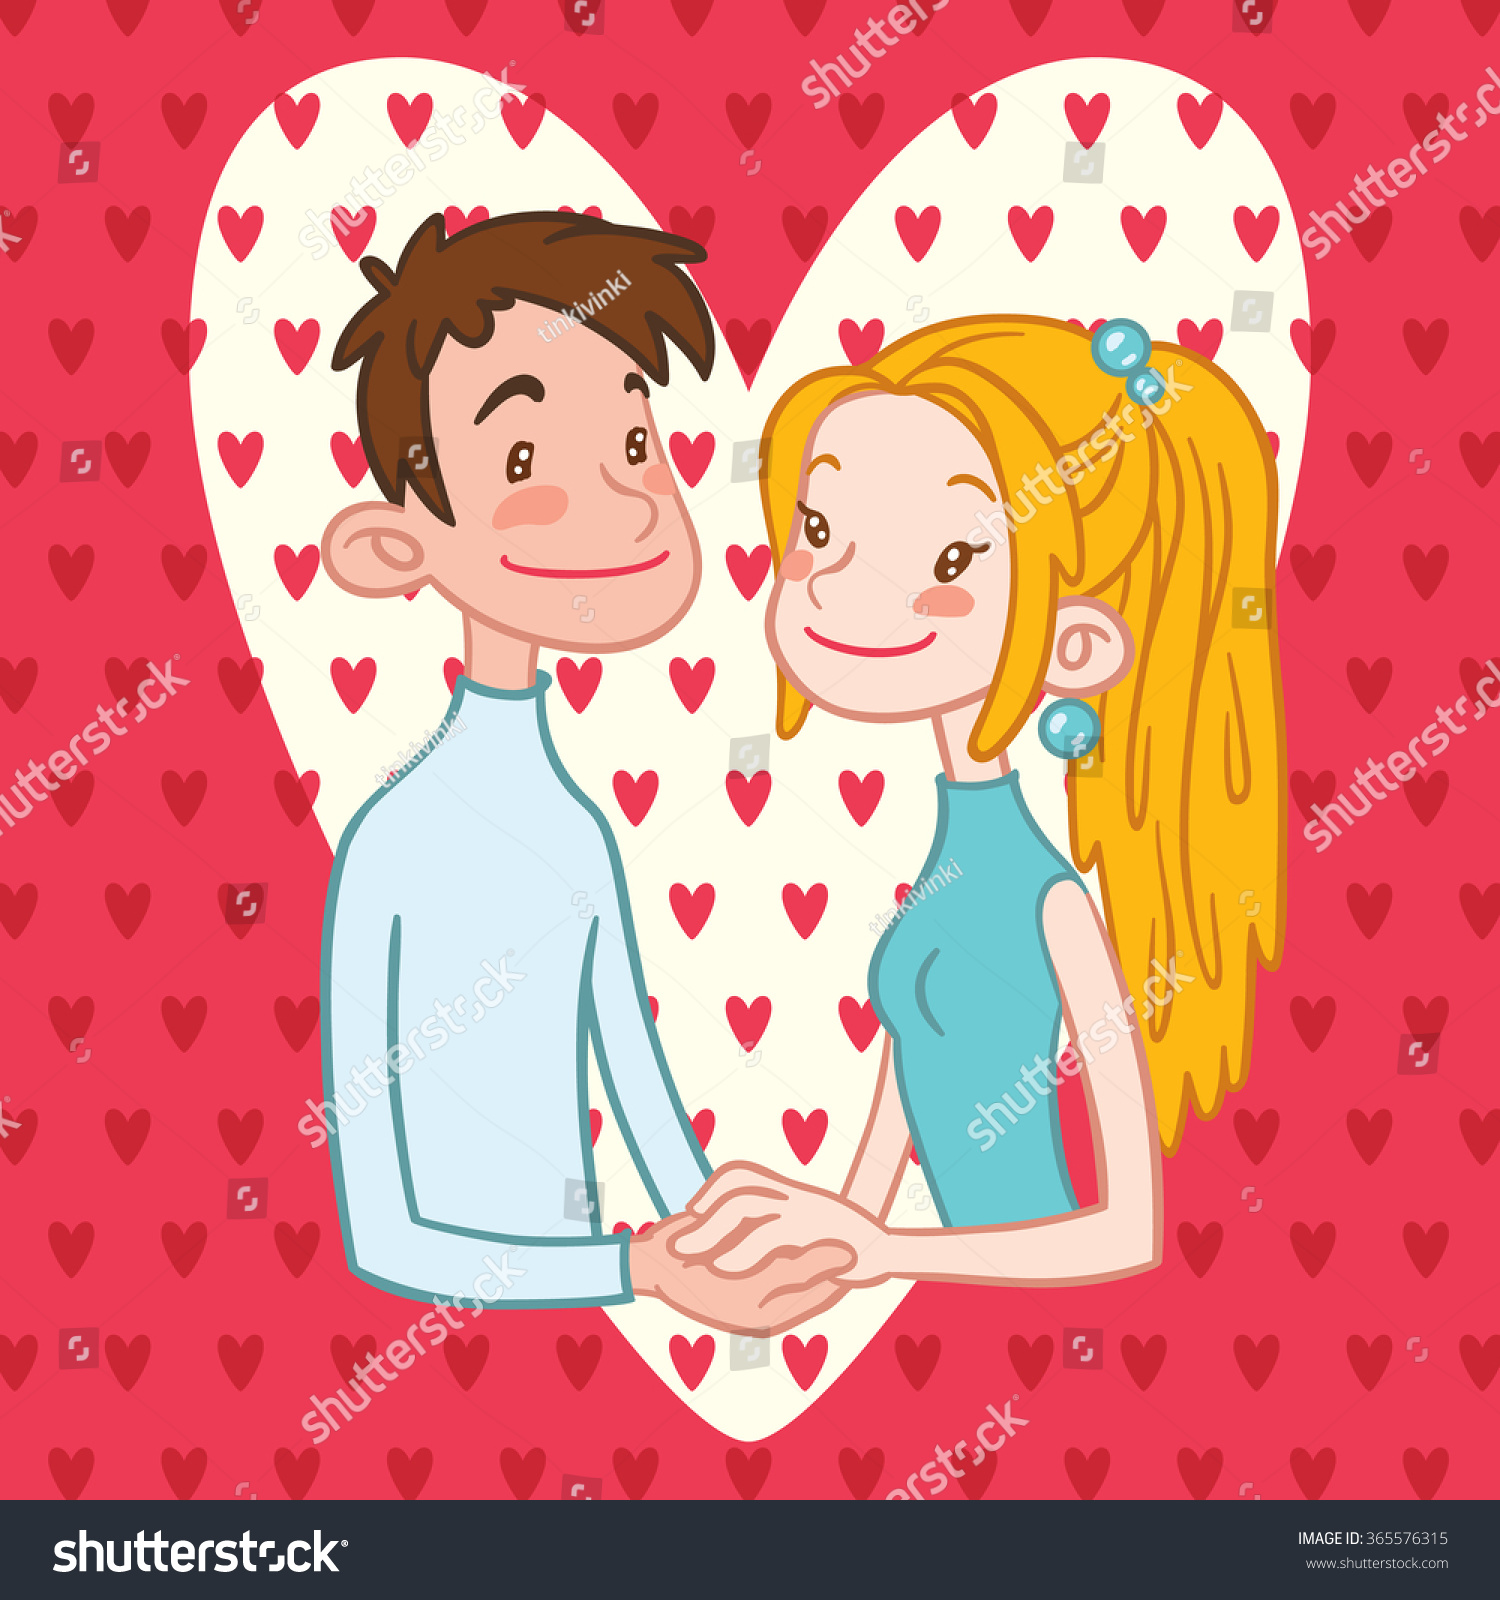 Romantic couple holding hands with hearts on a background valentines day card vector illustration